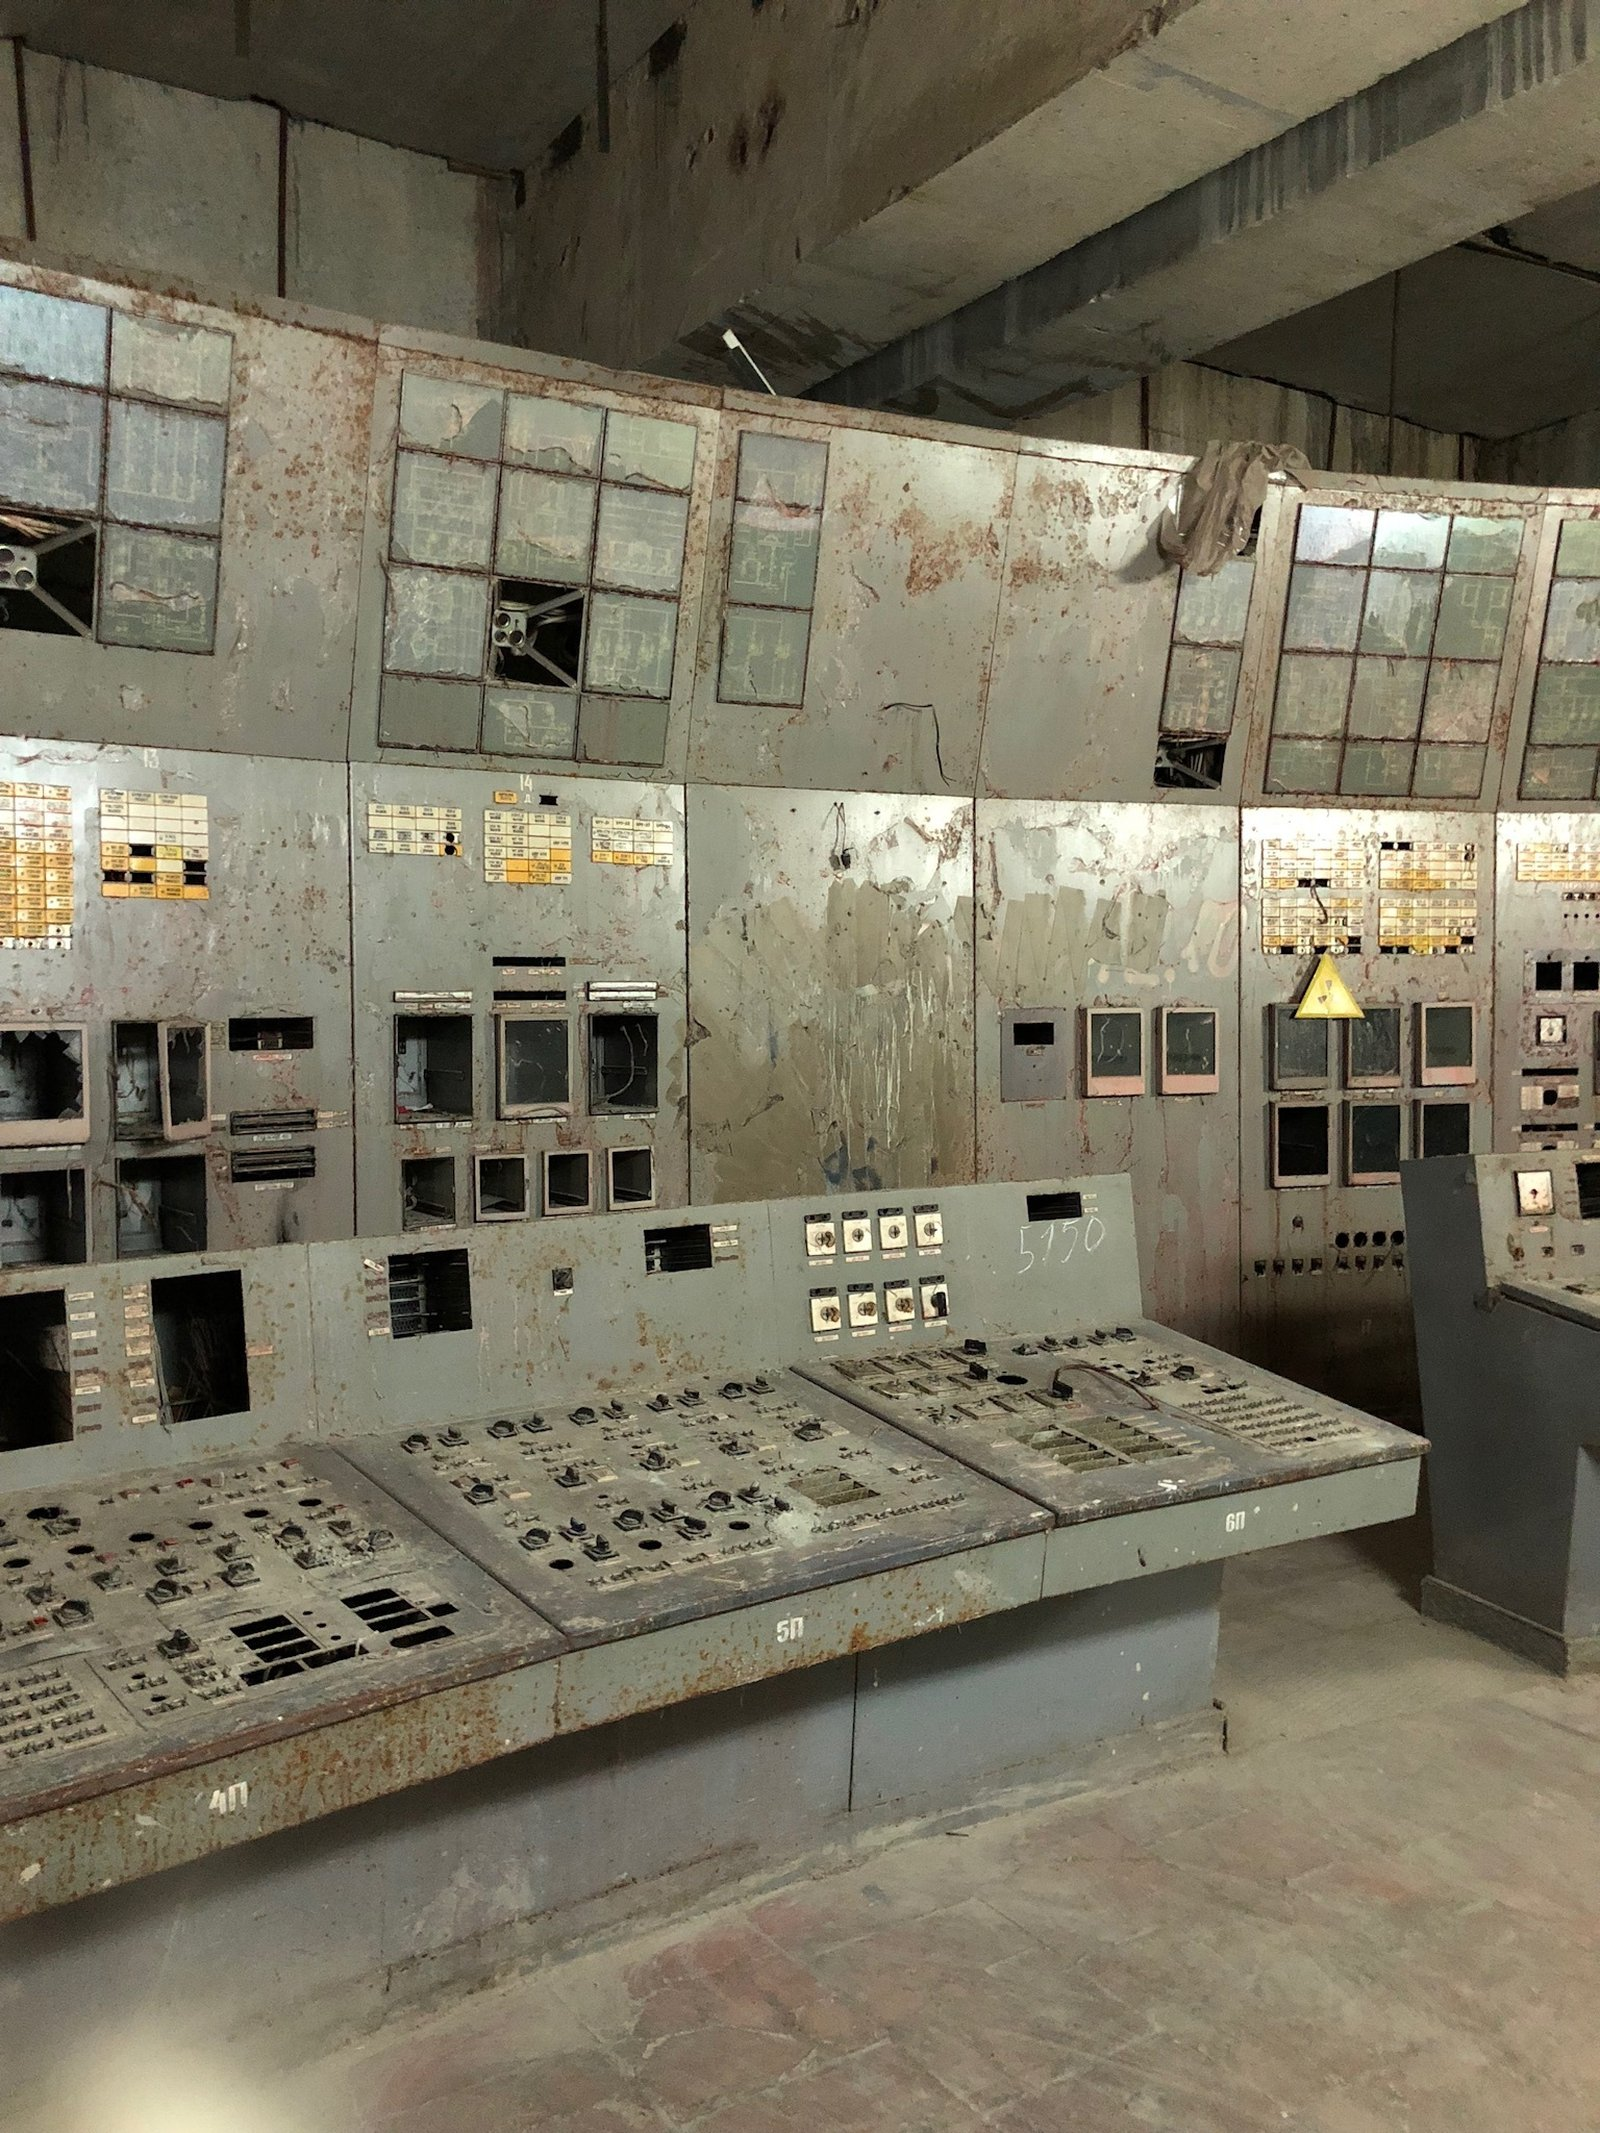 Image - The disused control room of Reactor No.4 at the Chernobyl plant